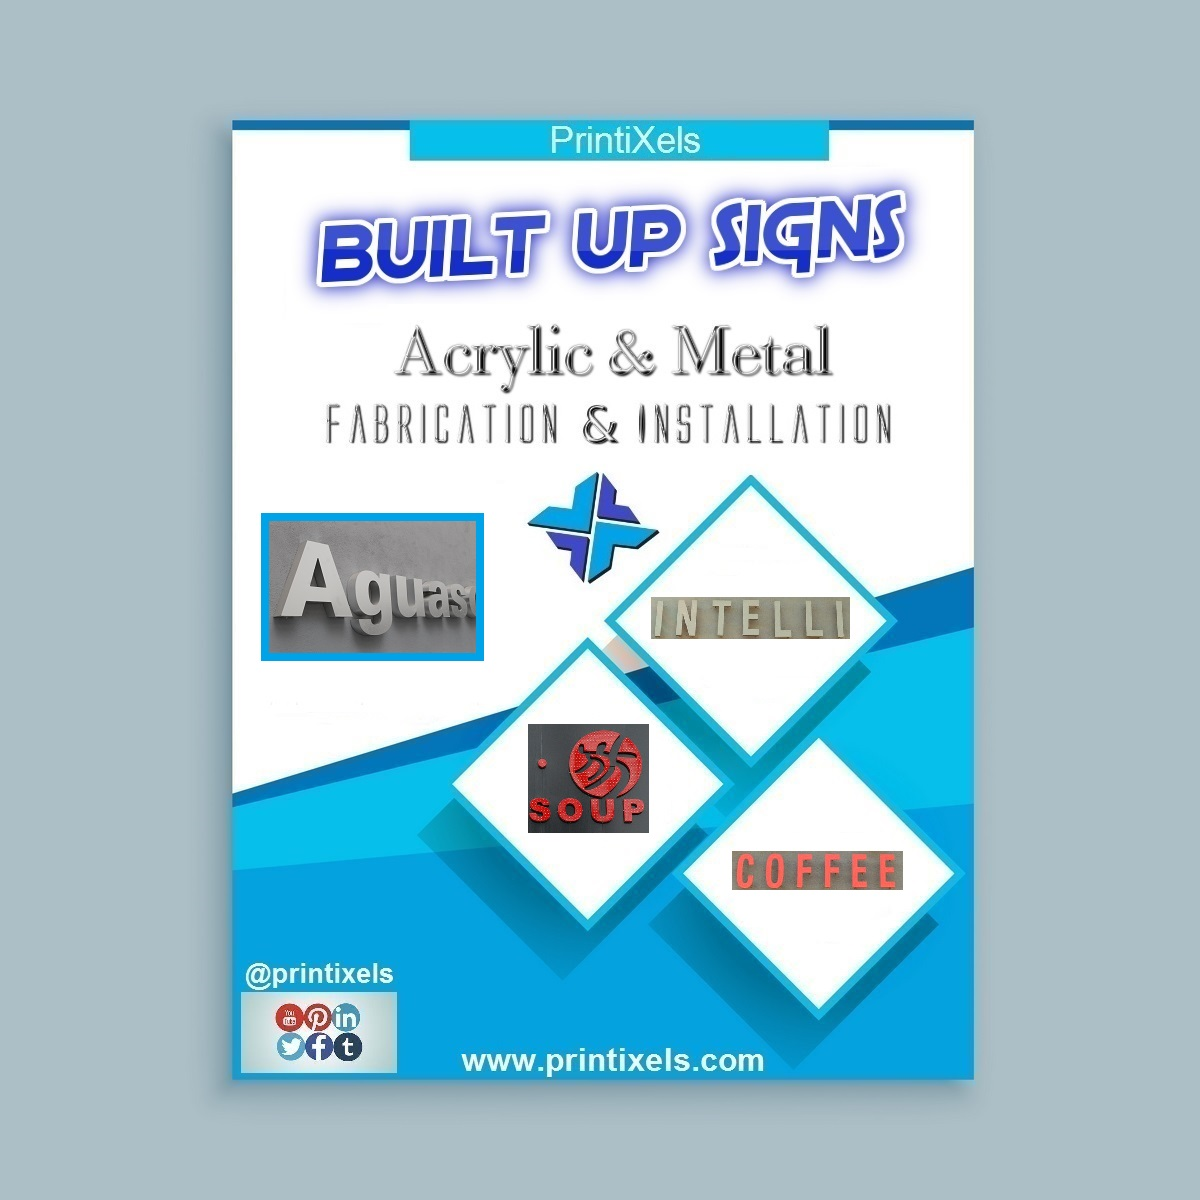 Built-Up Signs - Acrylic & Metal